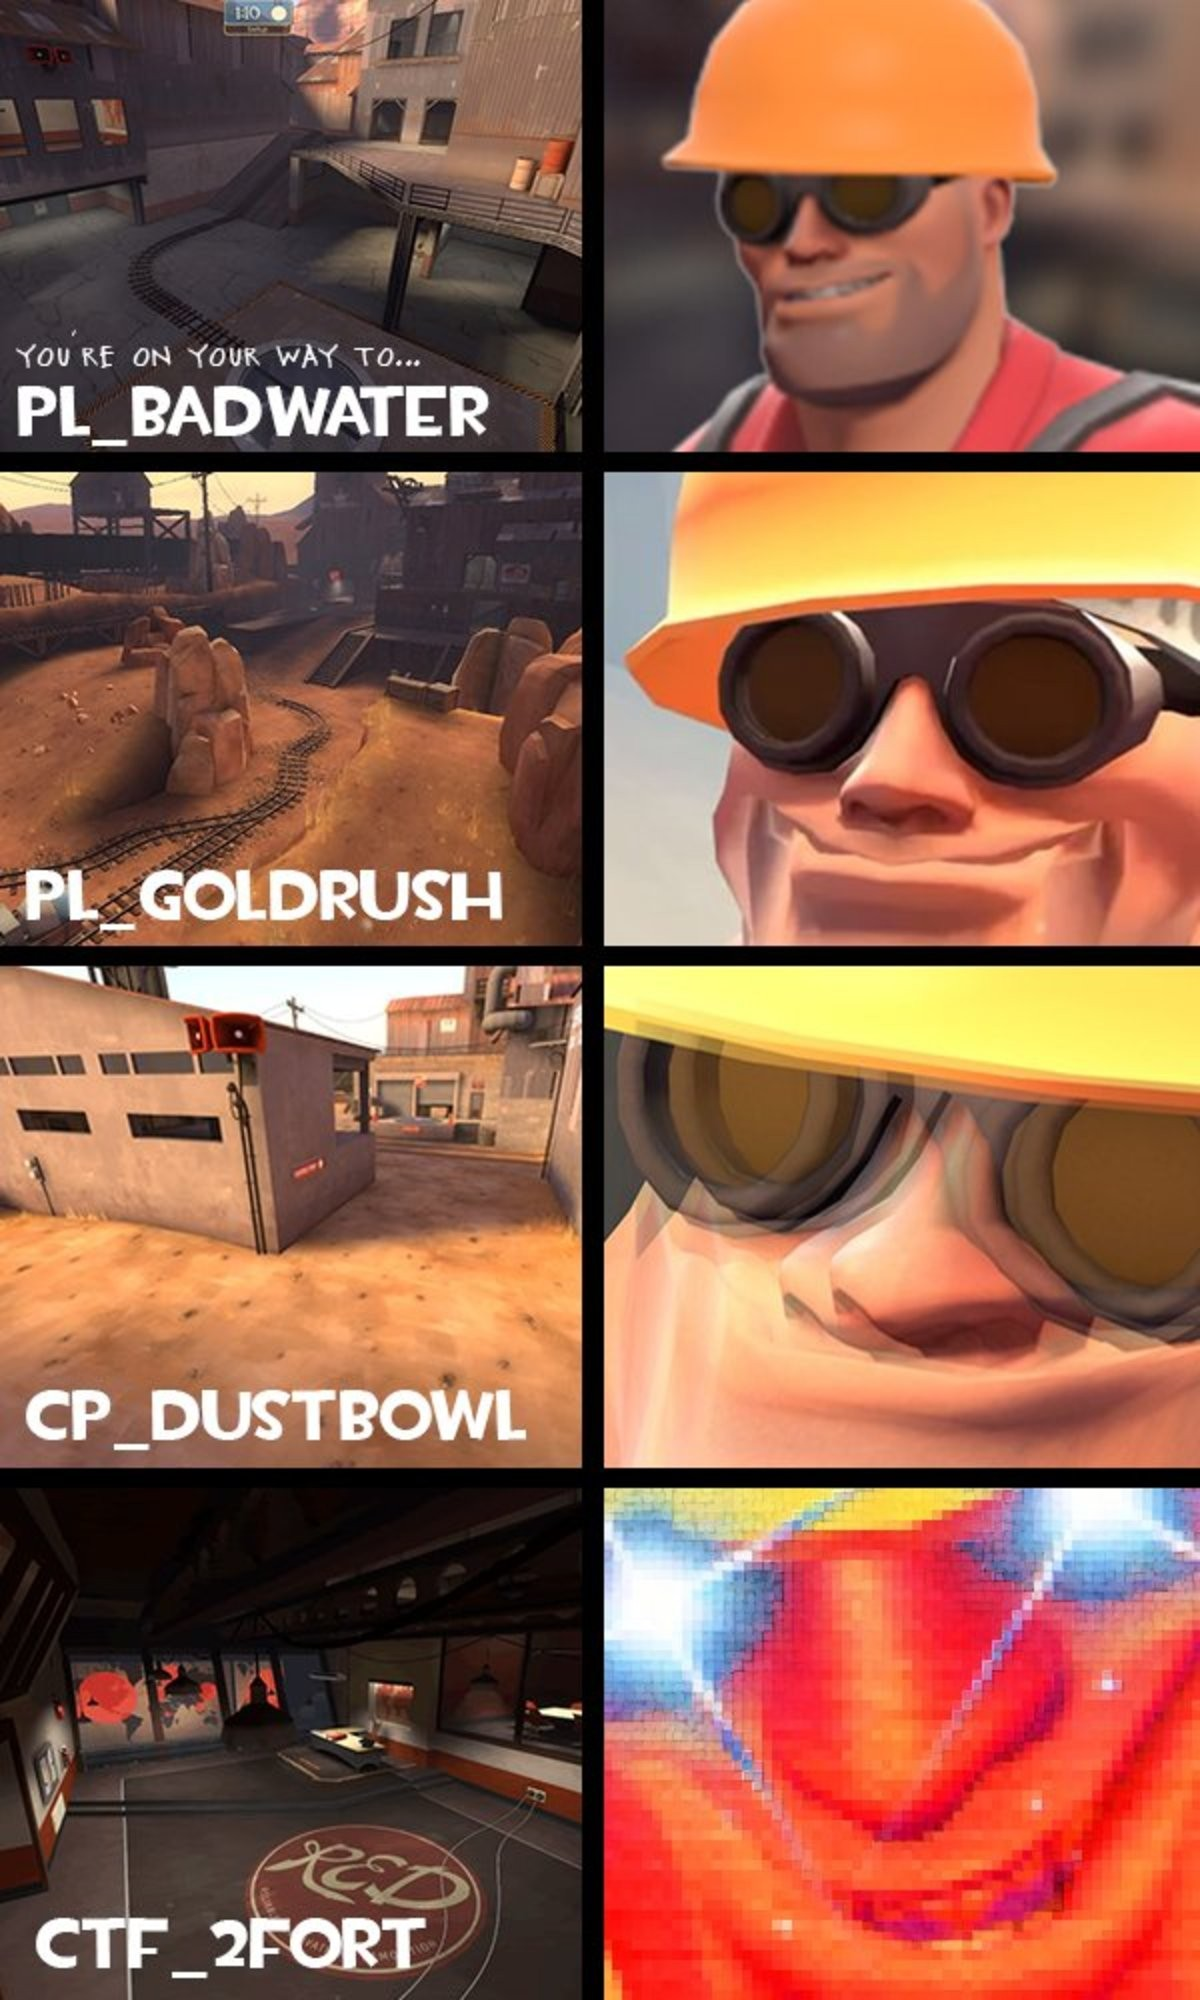 Only REAL men will understand. . PL_ BADWATER A' =. There are 3 things I fondly remember from back when I played TF2 in ctf_2fort plr_hightower and that spooky-ass cp_mann_mansion I tried getting back into tf2 la